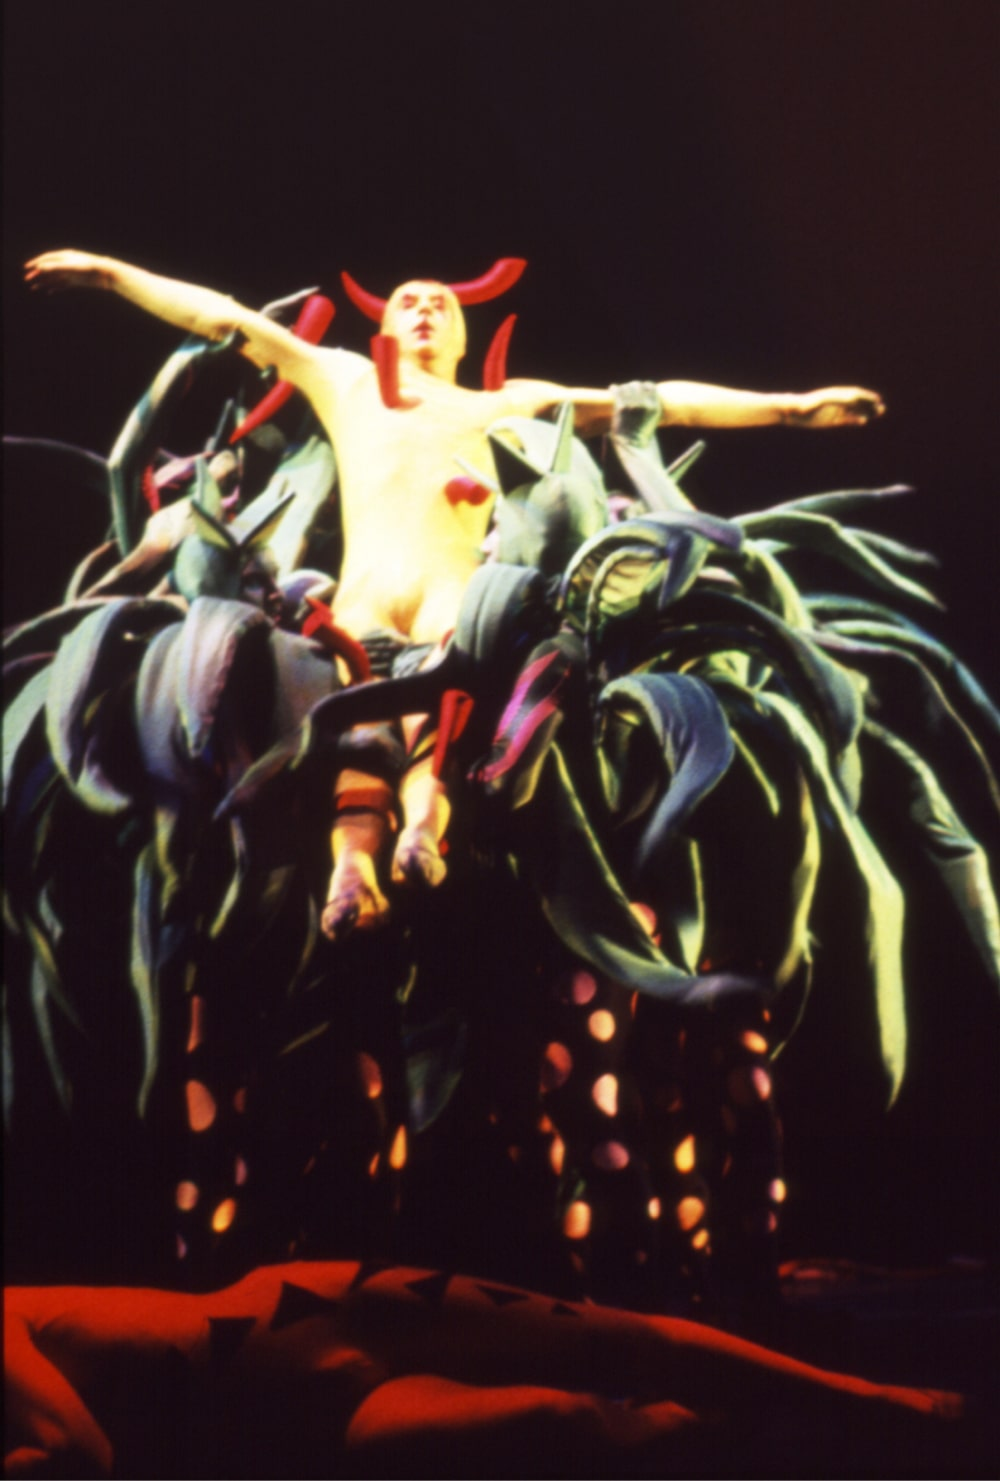 Dancer in yellow leotard pierced by large red thorns is held aloft by cactus people.